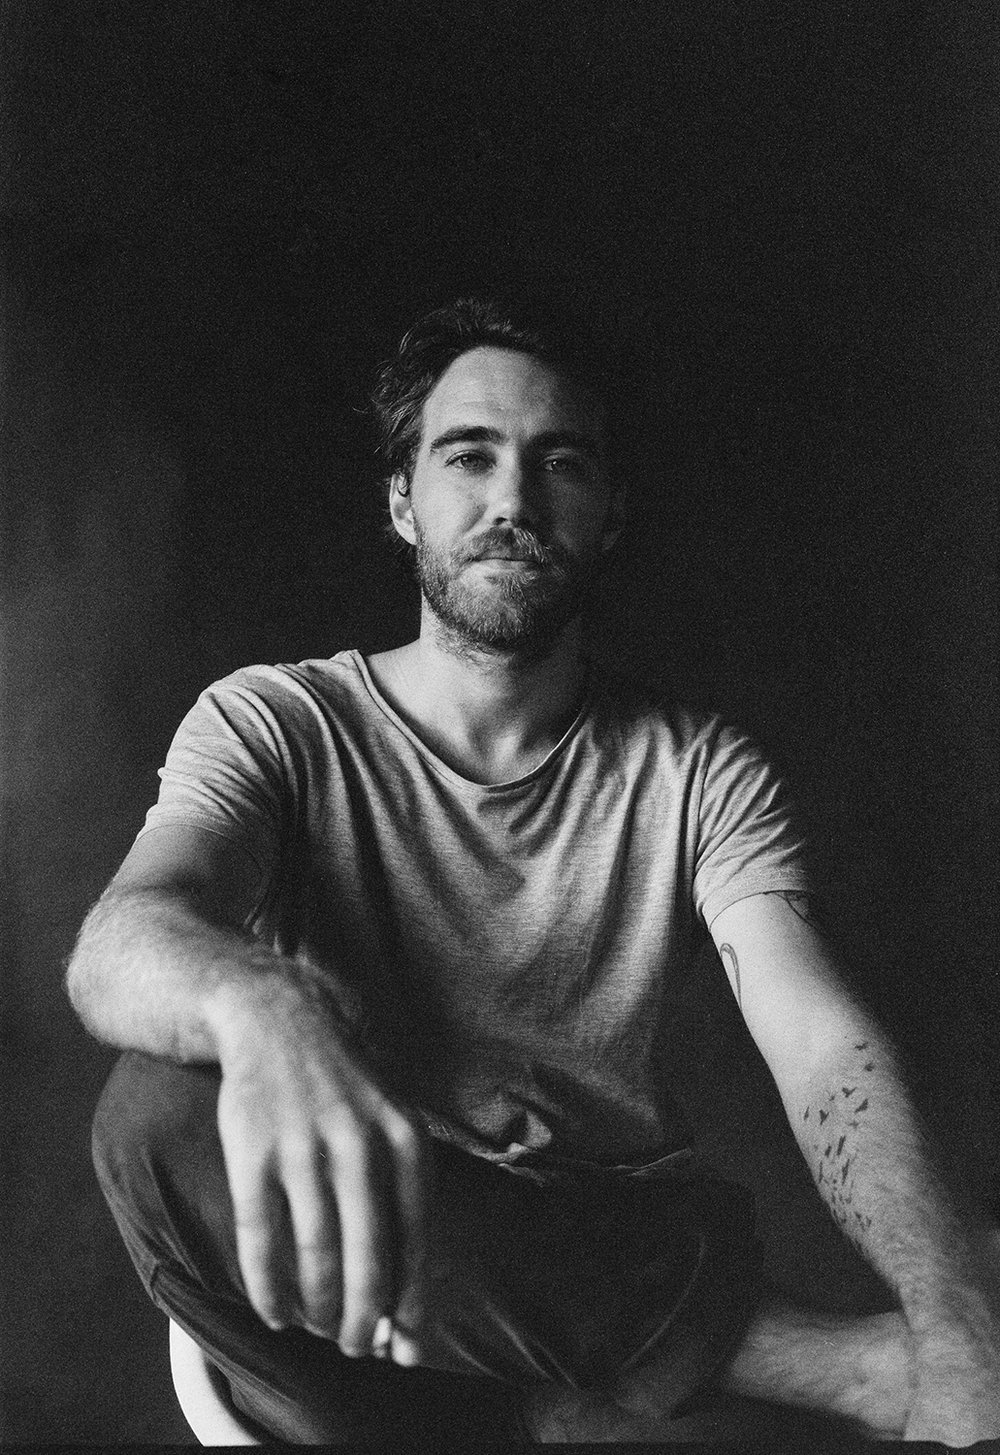 201804_MattCorby_MattJohnson_RainbowValley_Film24.jpg